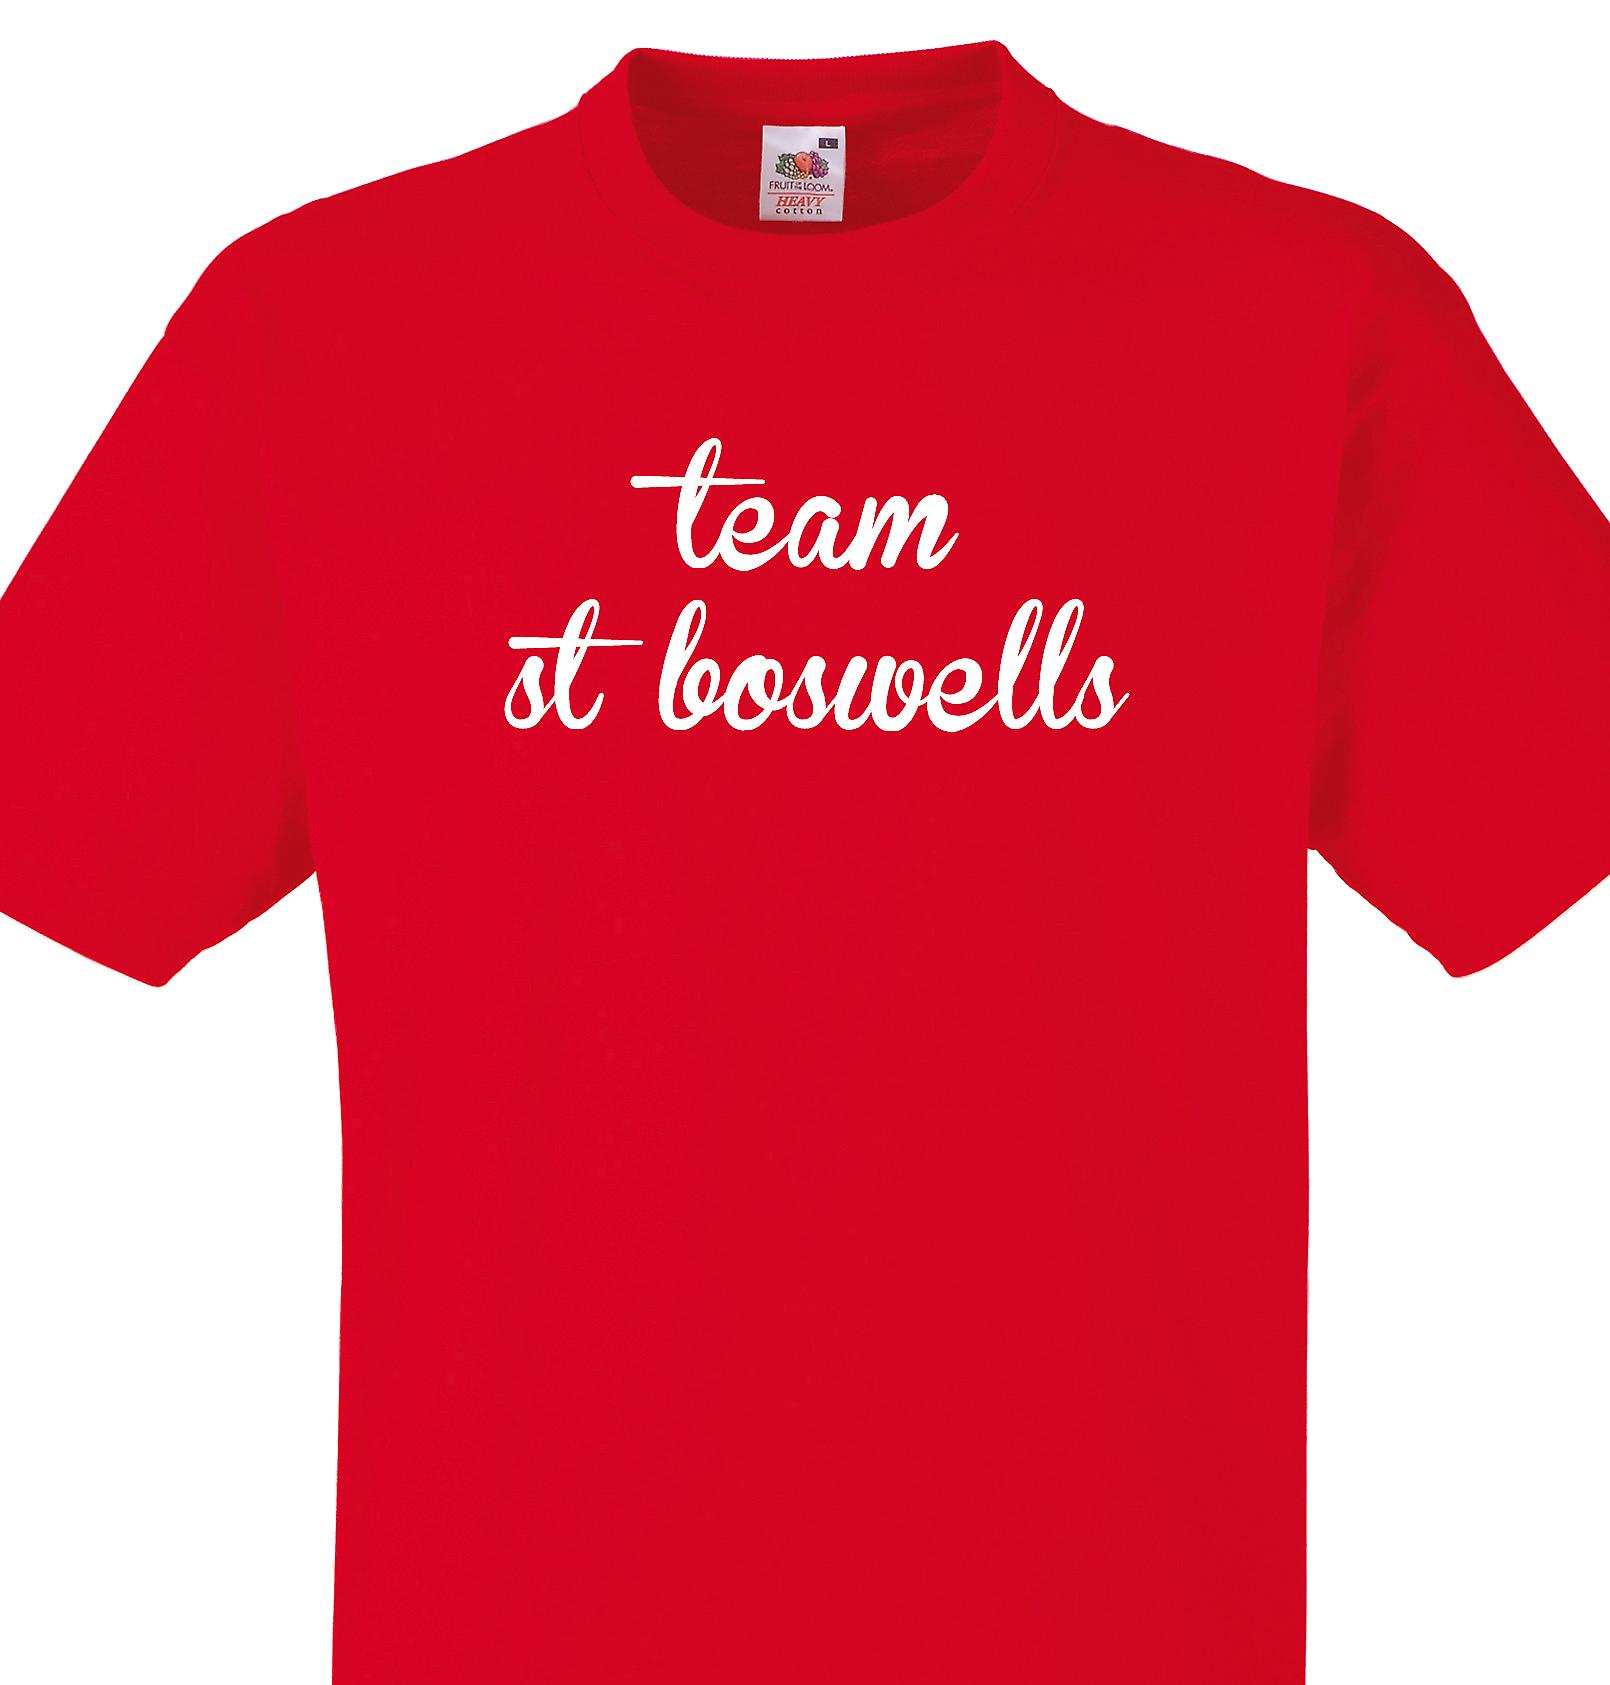 Team St boswells Red T shirt